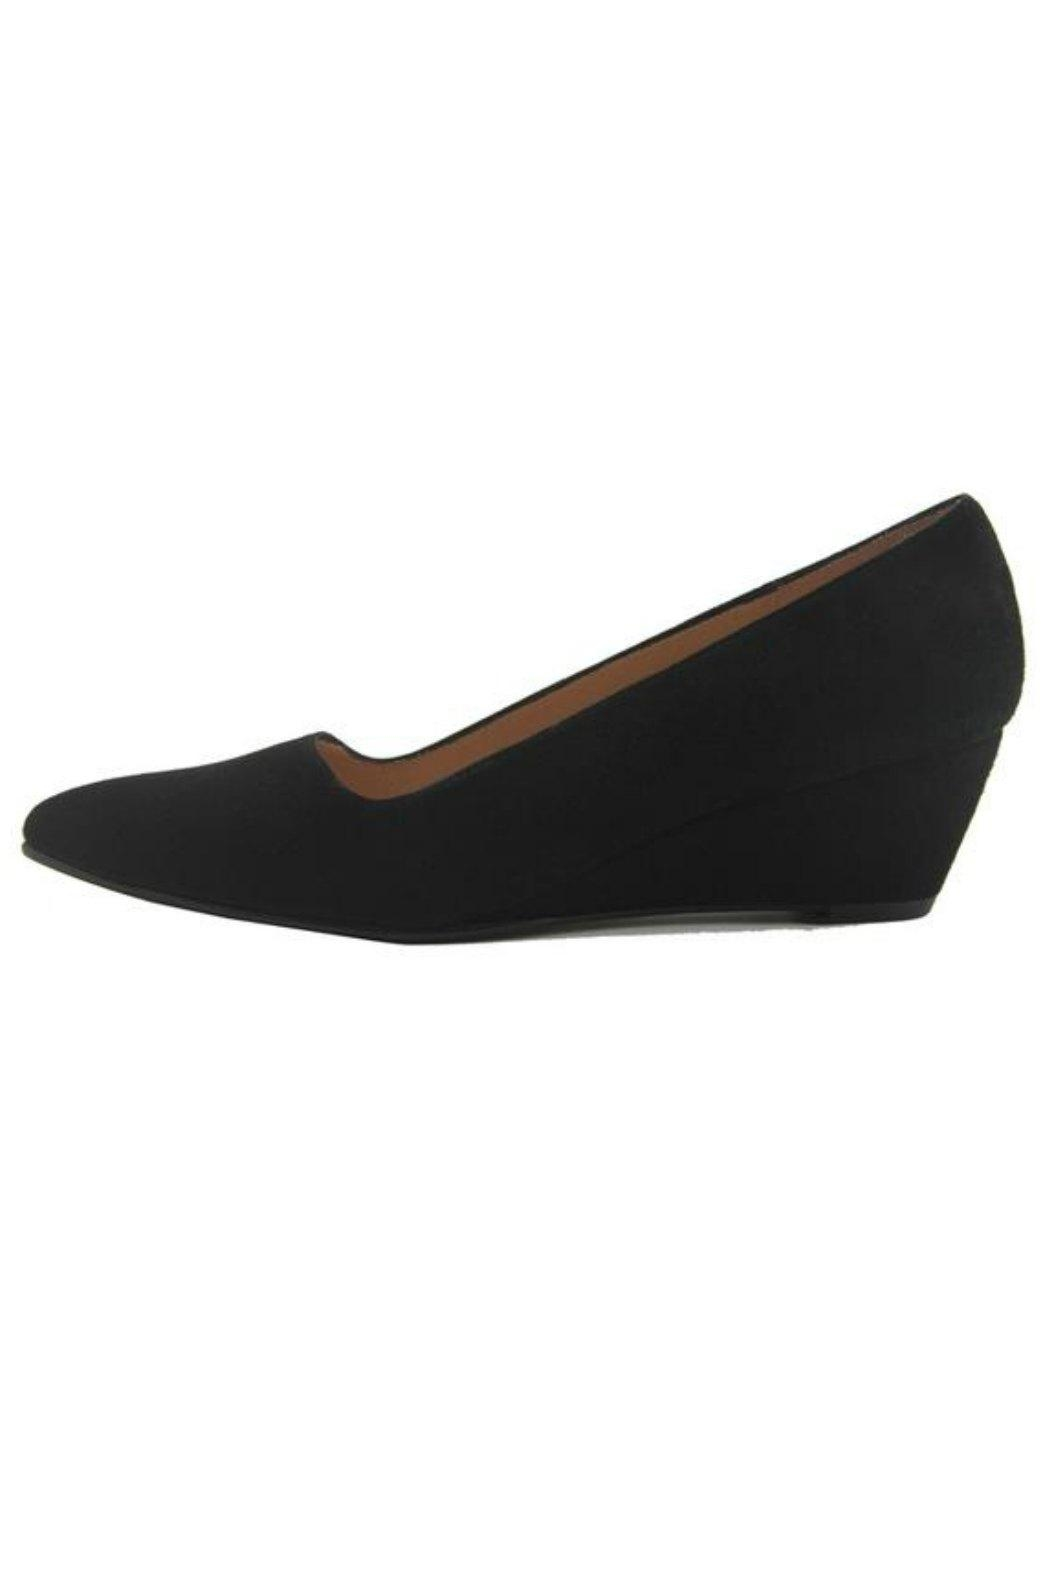 French Sole FS/NY Clap Suede Wedge - Main Image